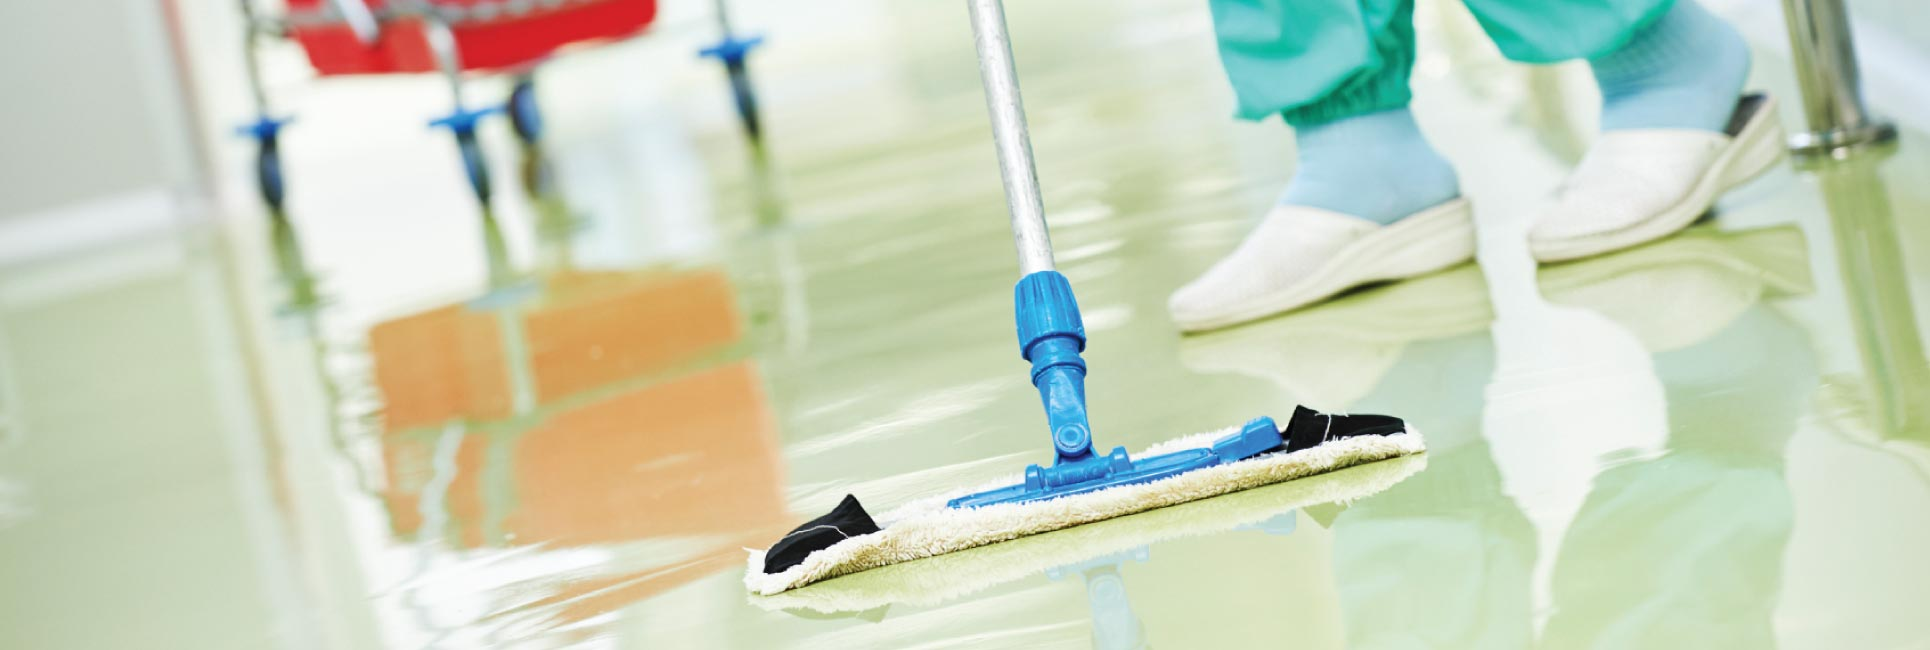 Industrial-cleaners